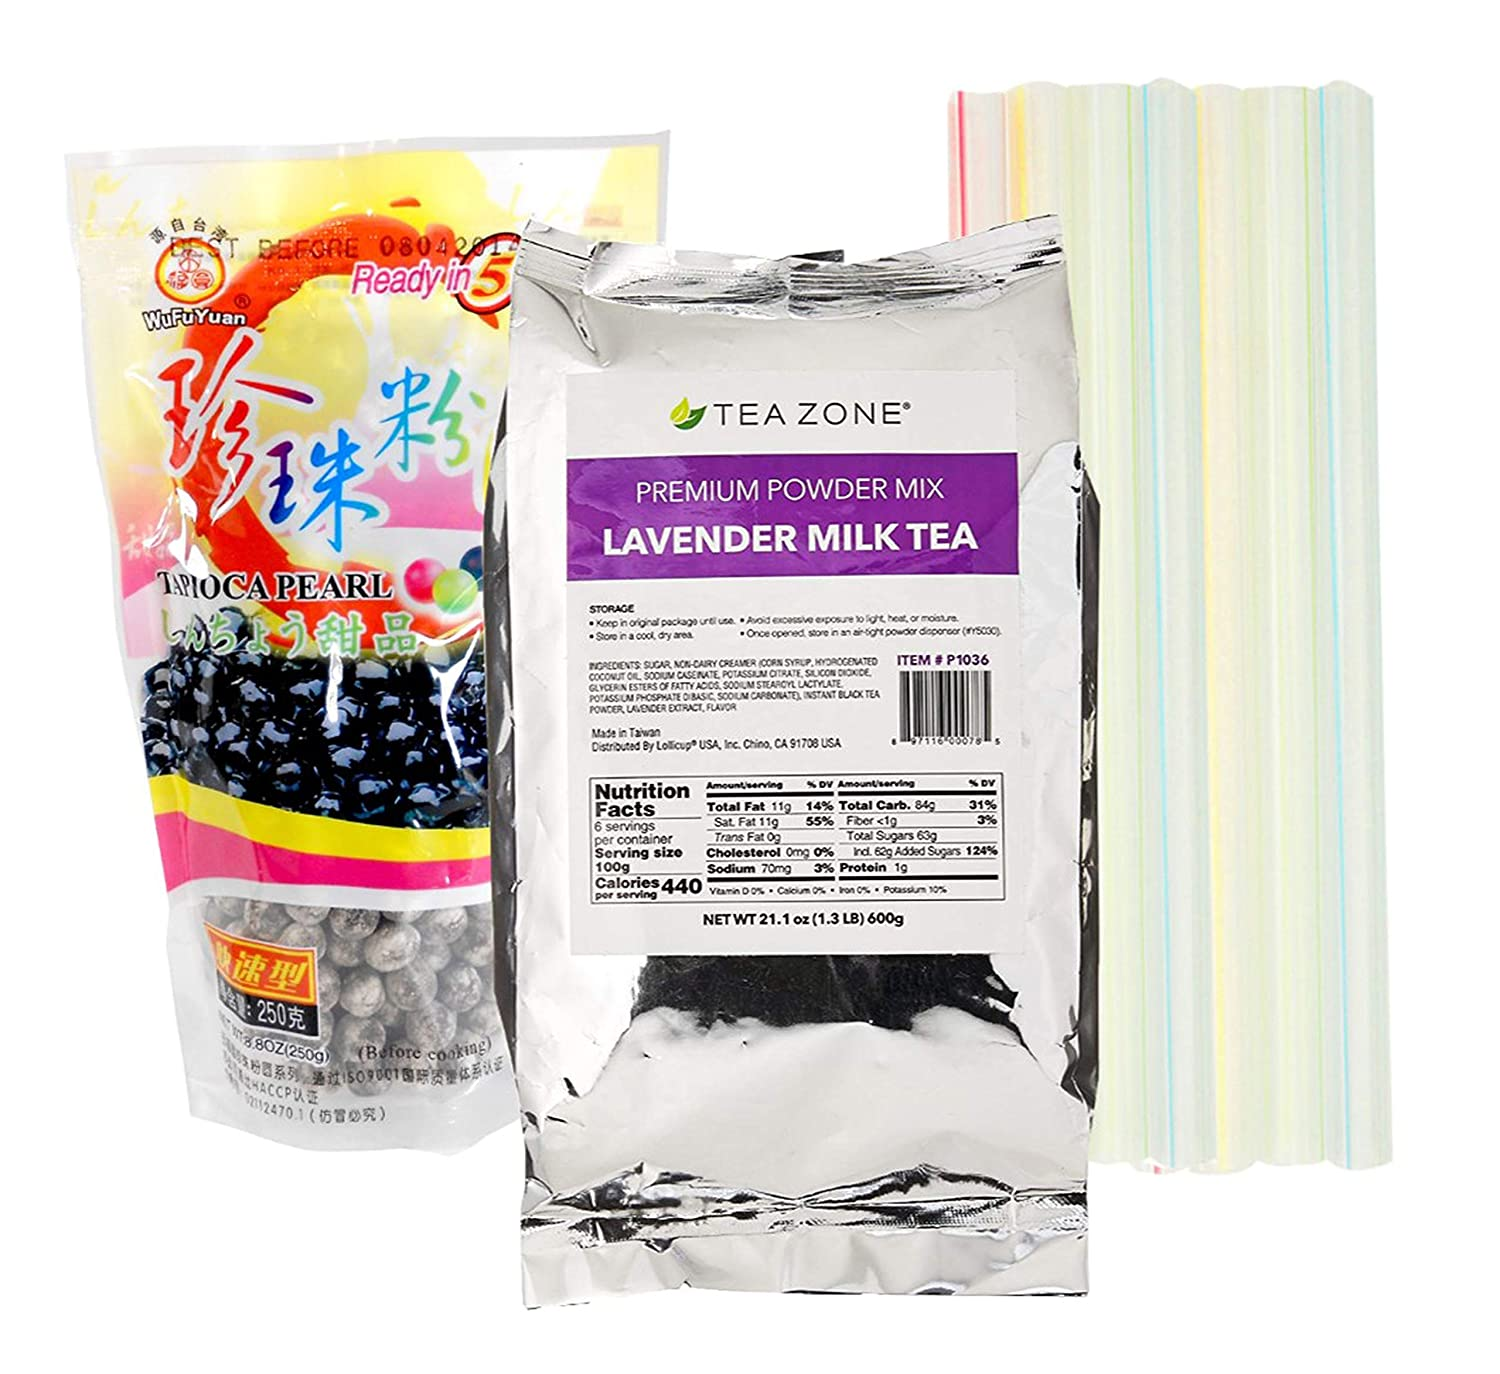 Boba Bubble Tea Lavender Milk Tea Kit with 1 Tea Zone Instant Lavender Milk Tea, 1 Black WuFuYuan Tapioca Pearls and 10 Boba Wide Straws Individually ...